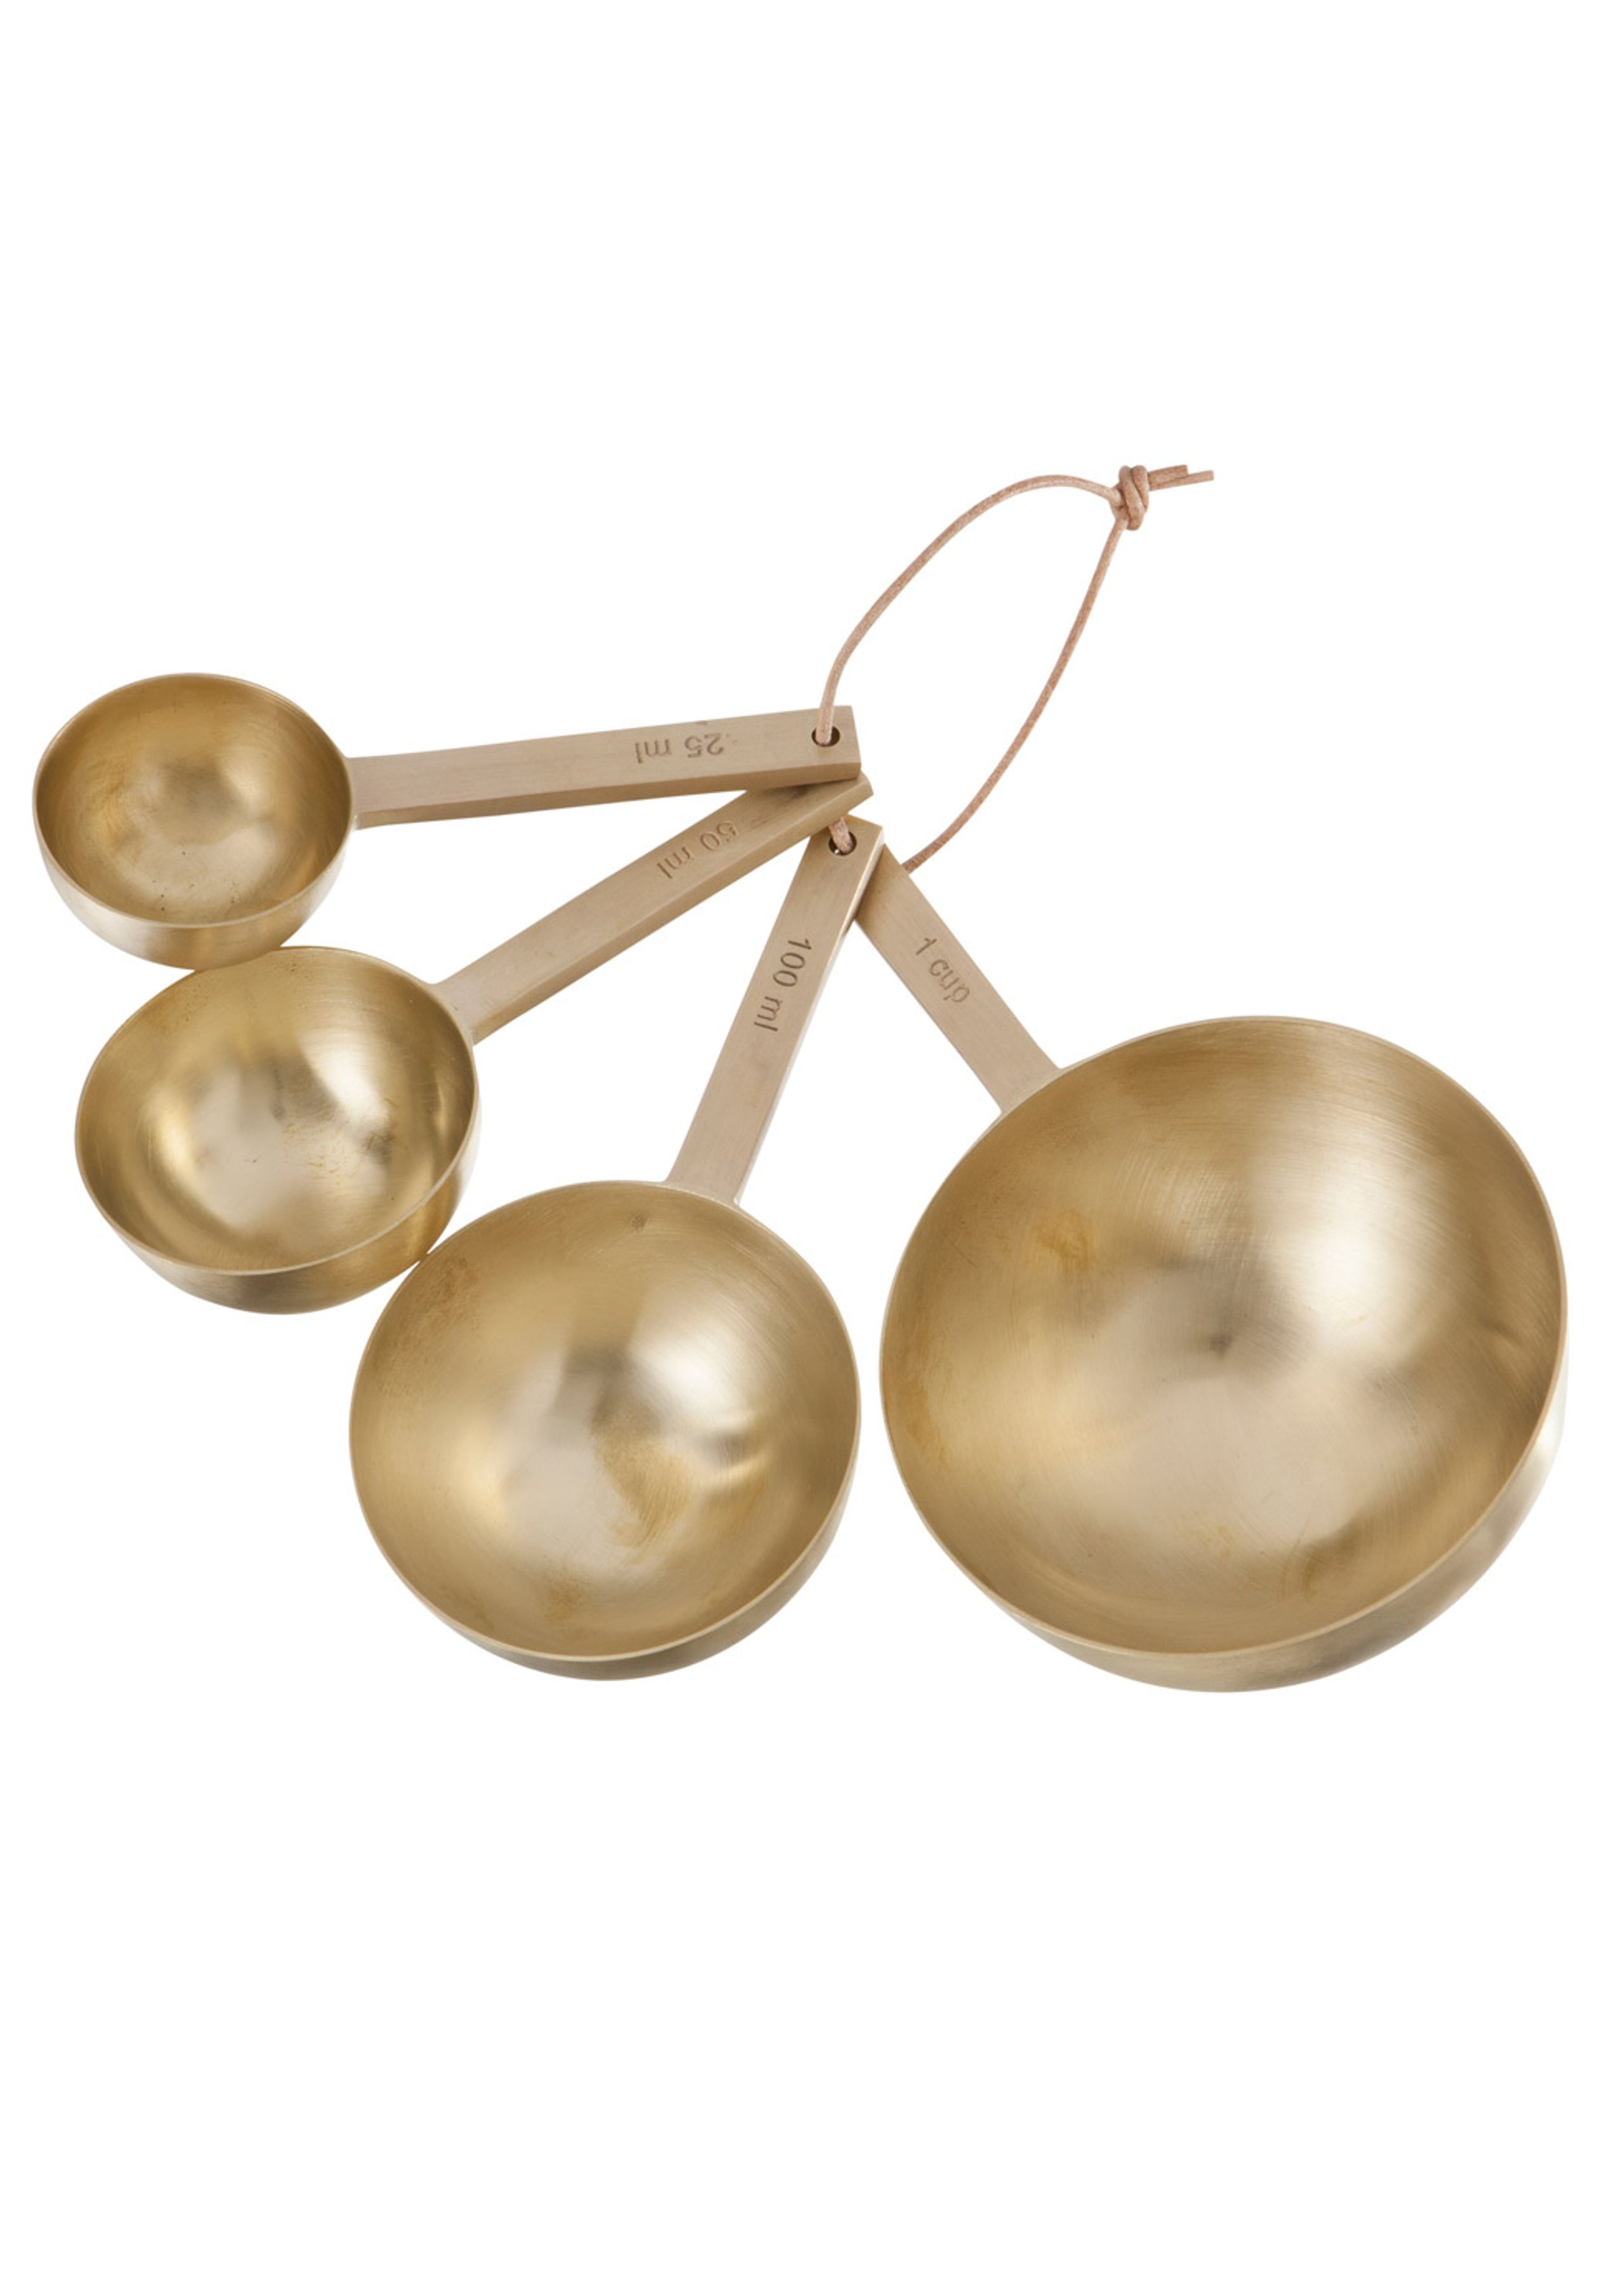 Image of   Brass Measurement Spoons